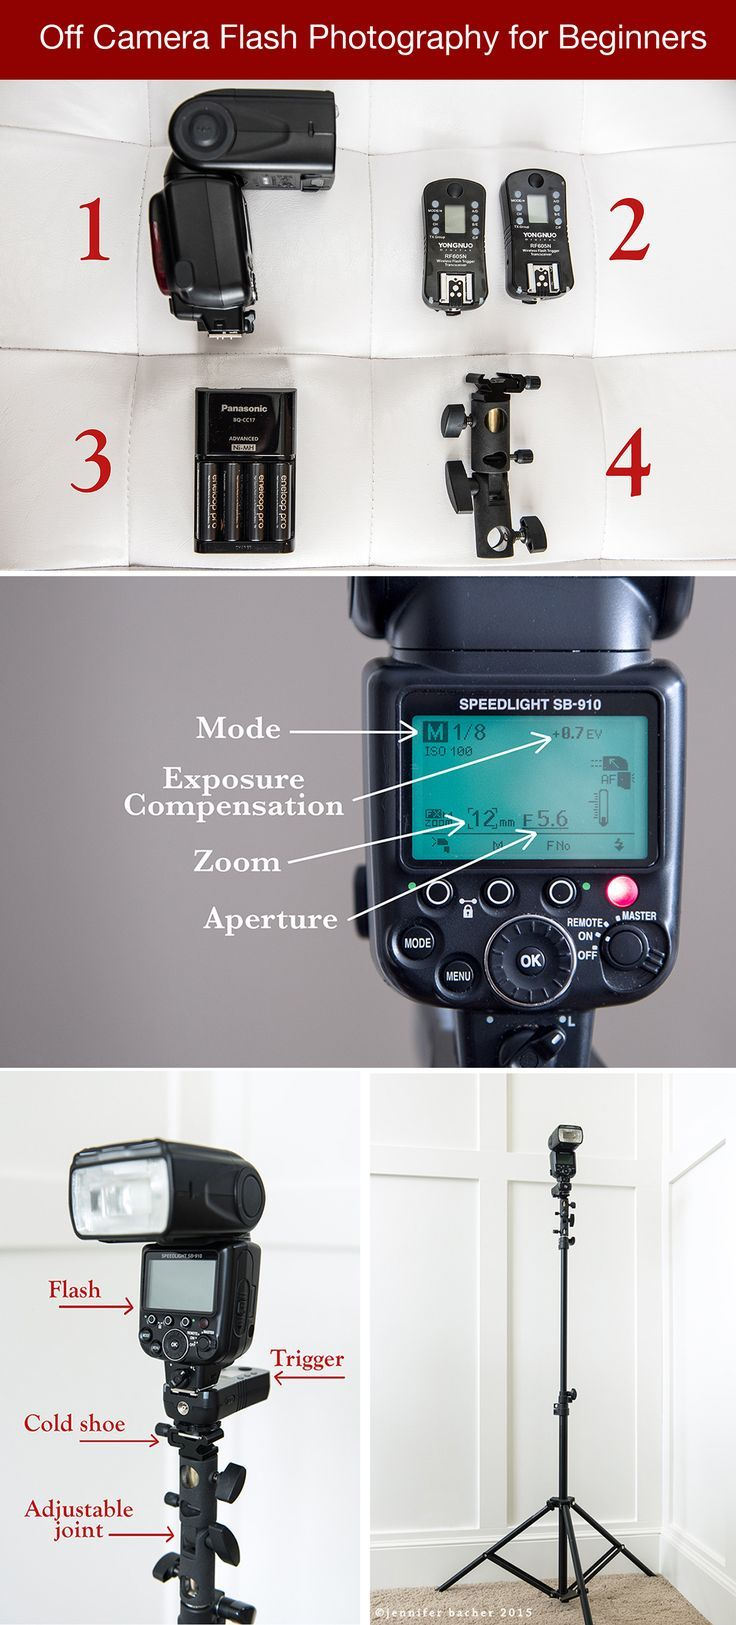 Off Camera Flash Photography for Beginners